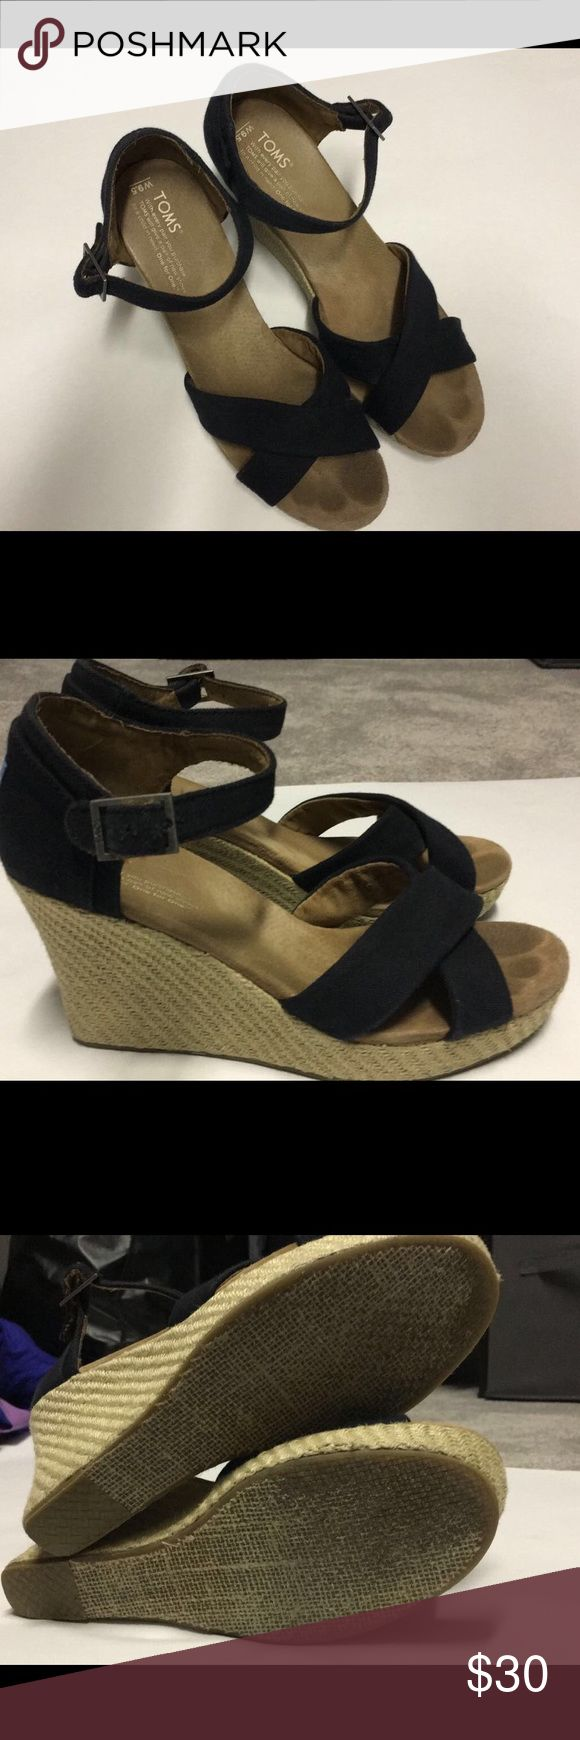 TOMS wedges TOMS wedge in black size 9.5. Runs true to size. Previously worn but shows very little signs of wear. TOMS Shoes Wedges